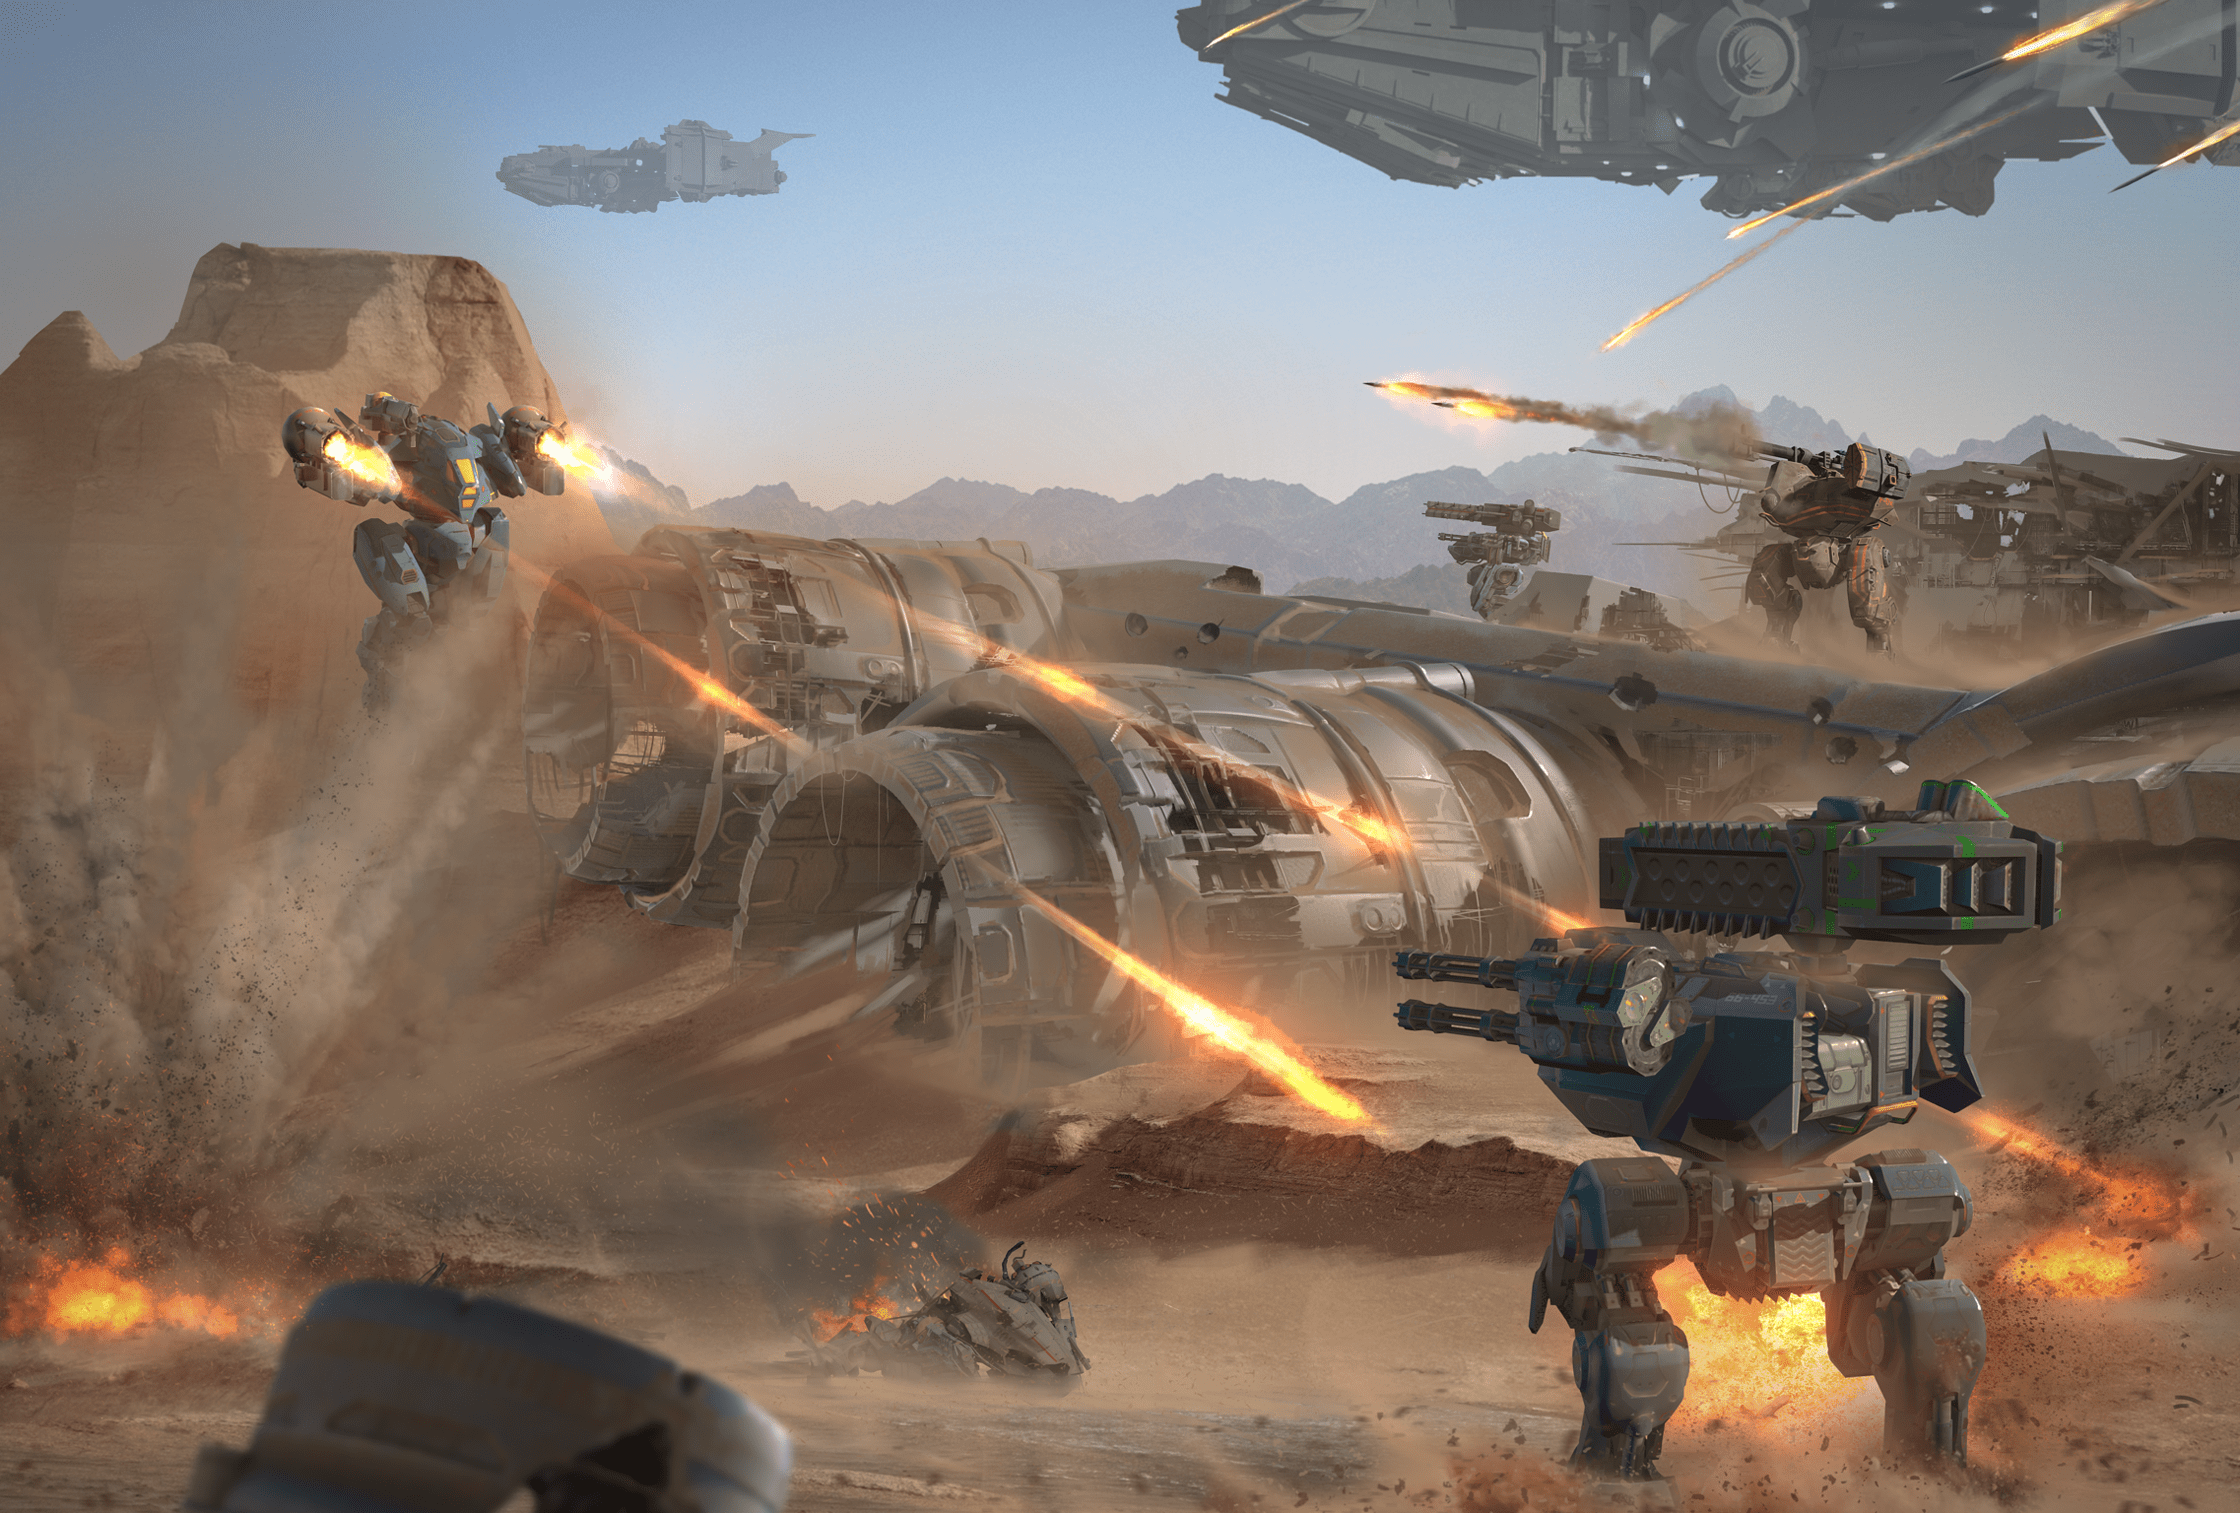 Hangar A Monter Next In War Robots How The Game Feels Plays And Looks War Robots